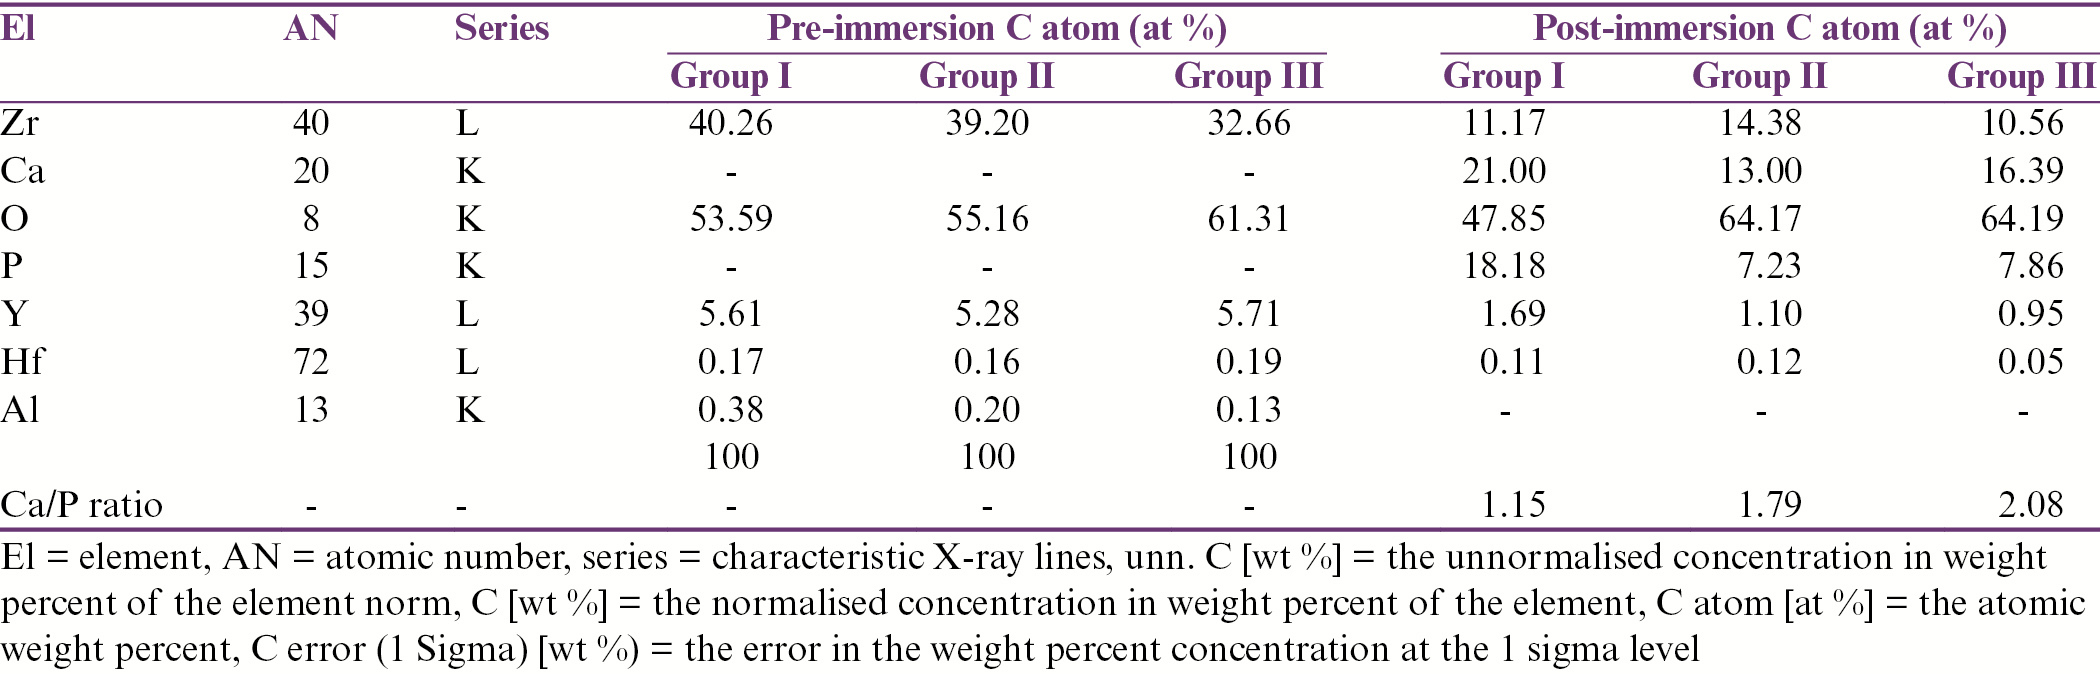 Table 2: Microchemical surface elemental composition of zirconia disc samples in Group I (untreated), Group II (sandblasted), and Group III (UV irradiated) before and after immersion in simulated body fluid